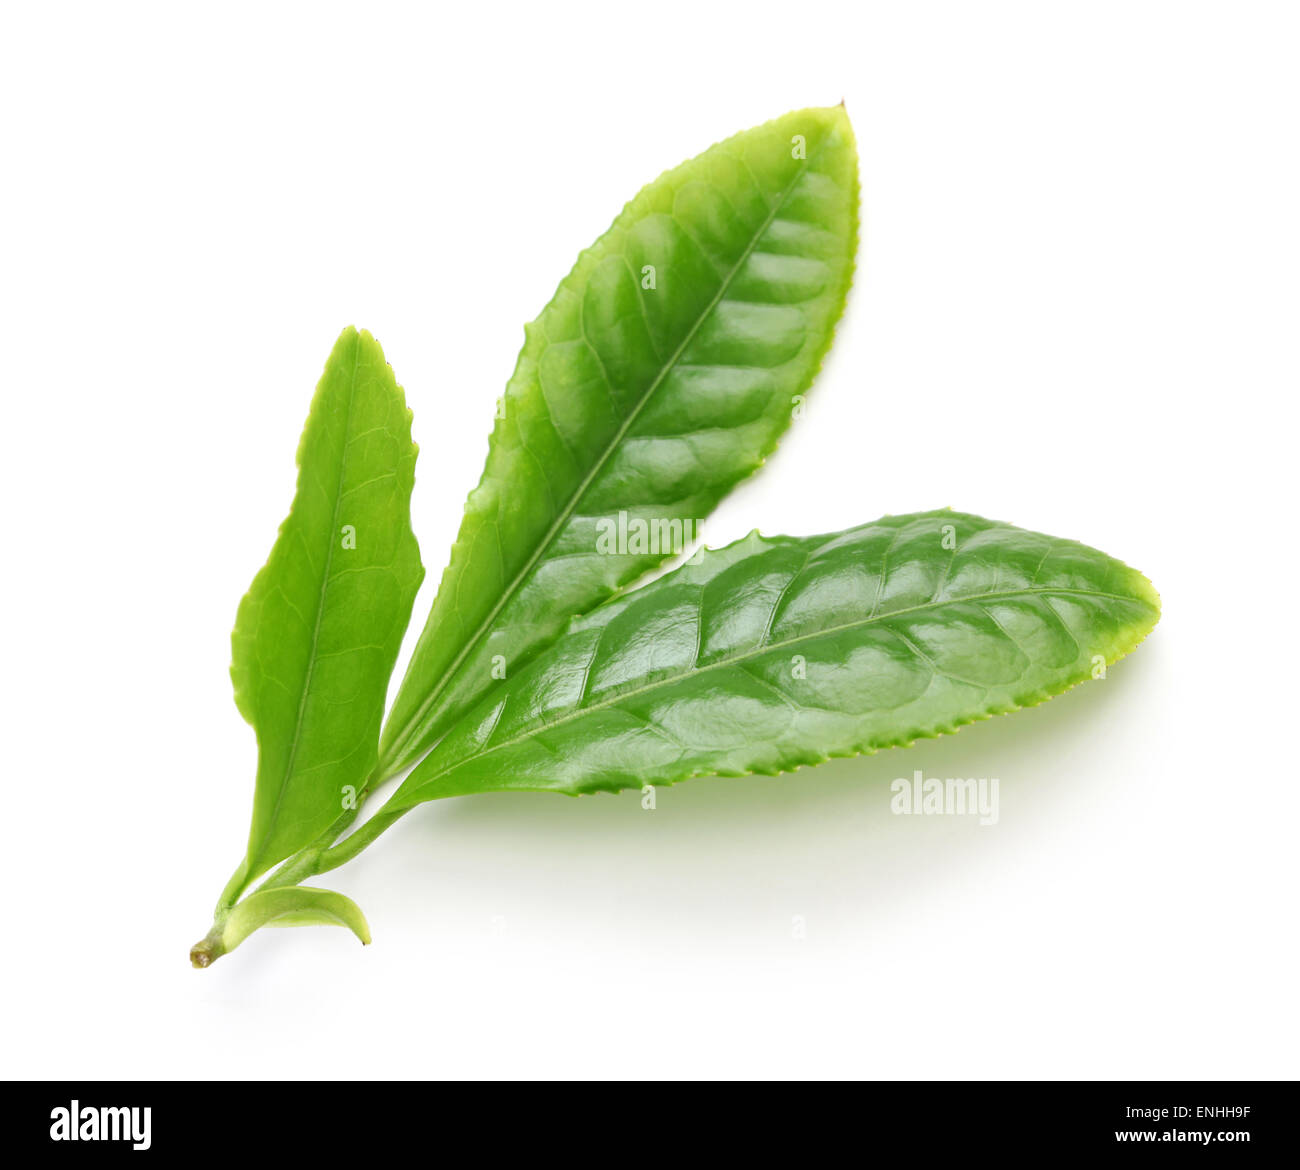 Japanese green tea first flush leaves isolated on white background - Stock Image